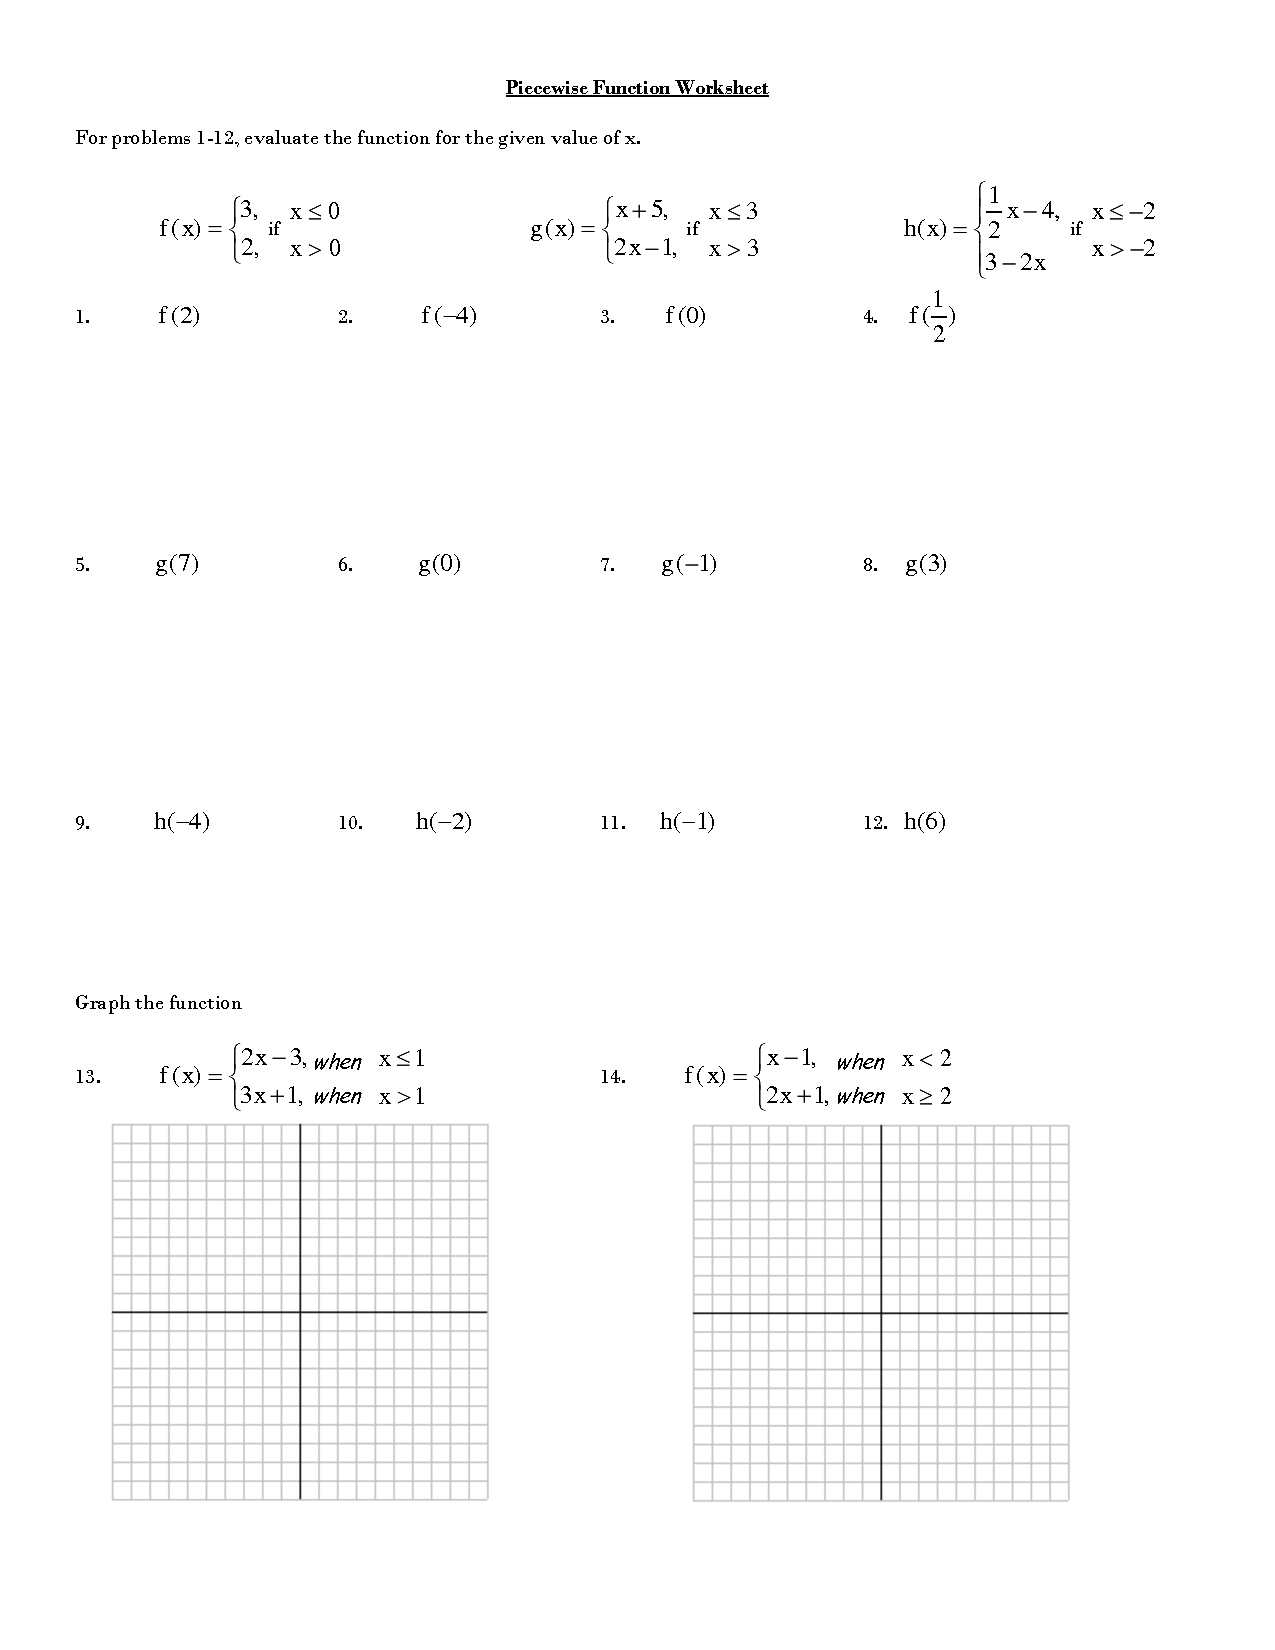 Piecewise Functions Word Problems Worksheet With Answers